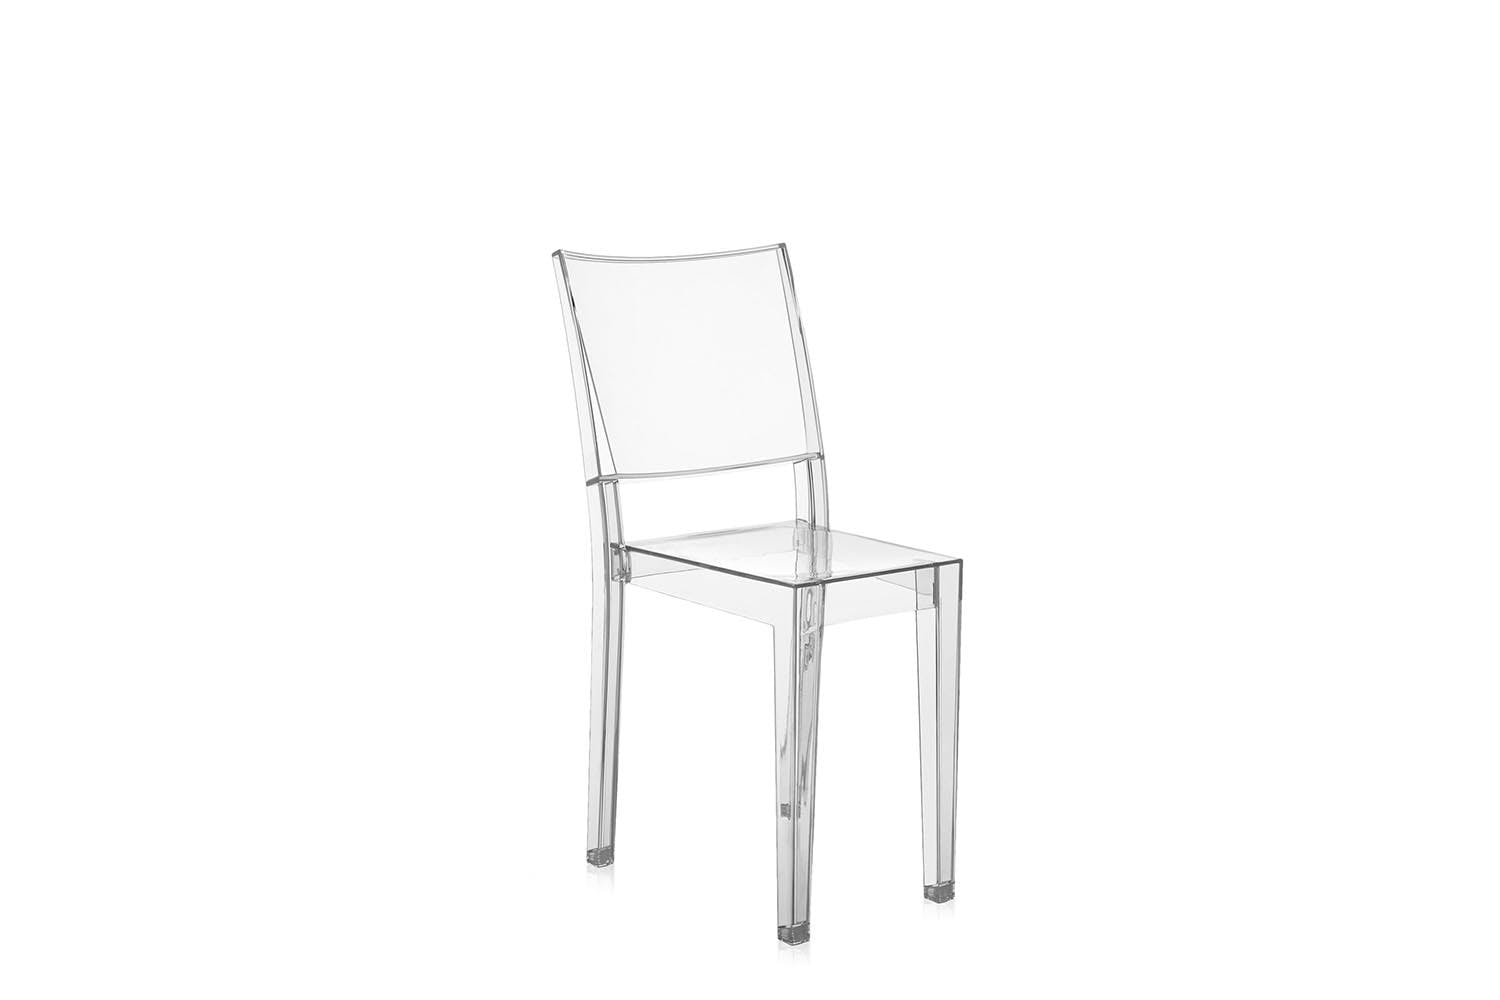 la marie chair by philippe starck for kartell  space furniture -